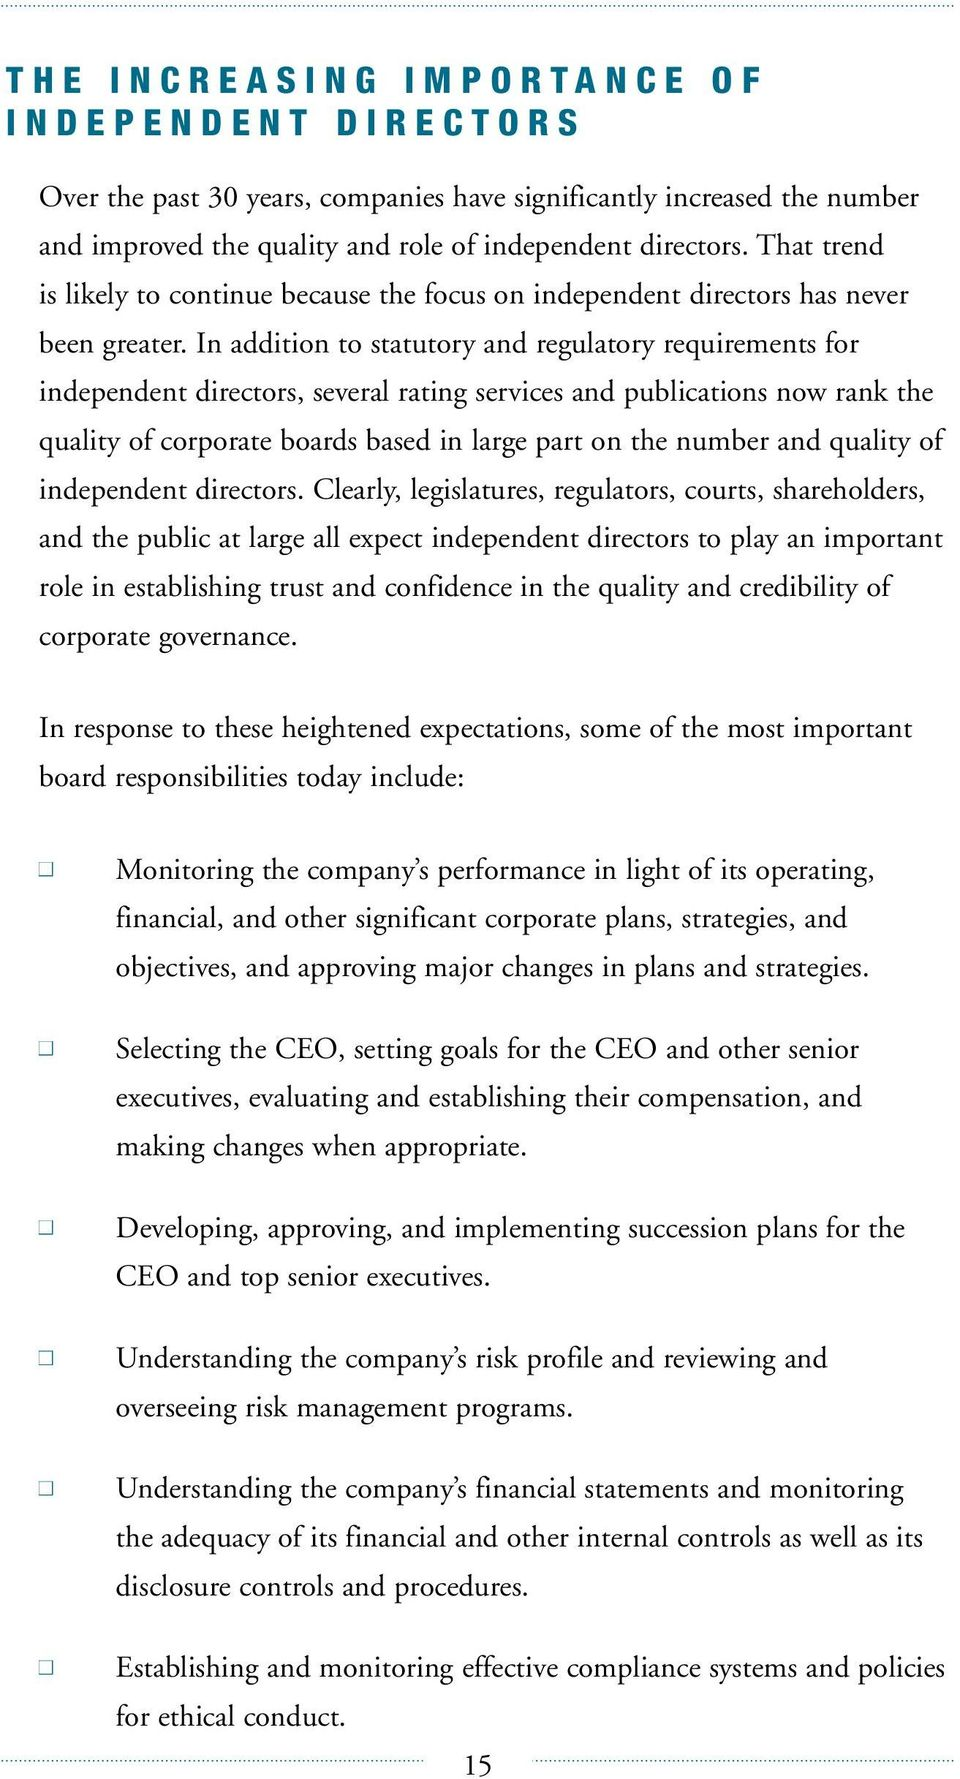 In addition to statutory and regulatory requirements for independent directors, several rating services and publications now rank the quality of corporate boards based in large part on the number and